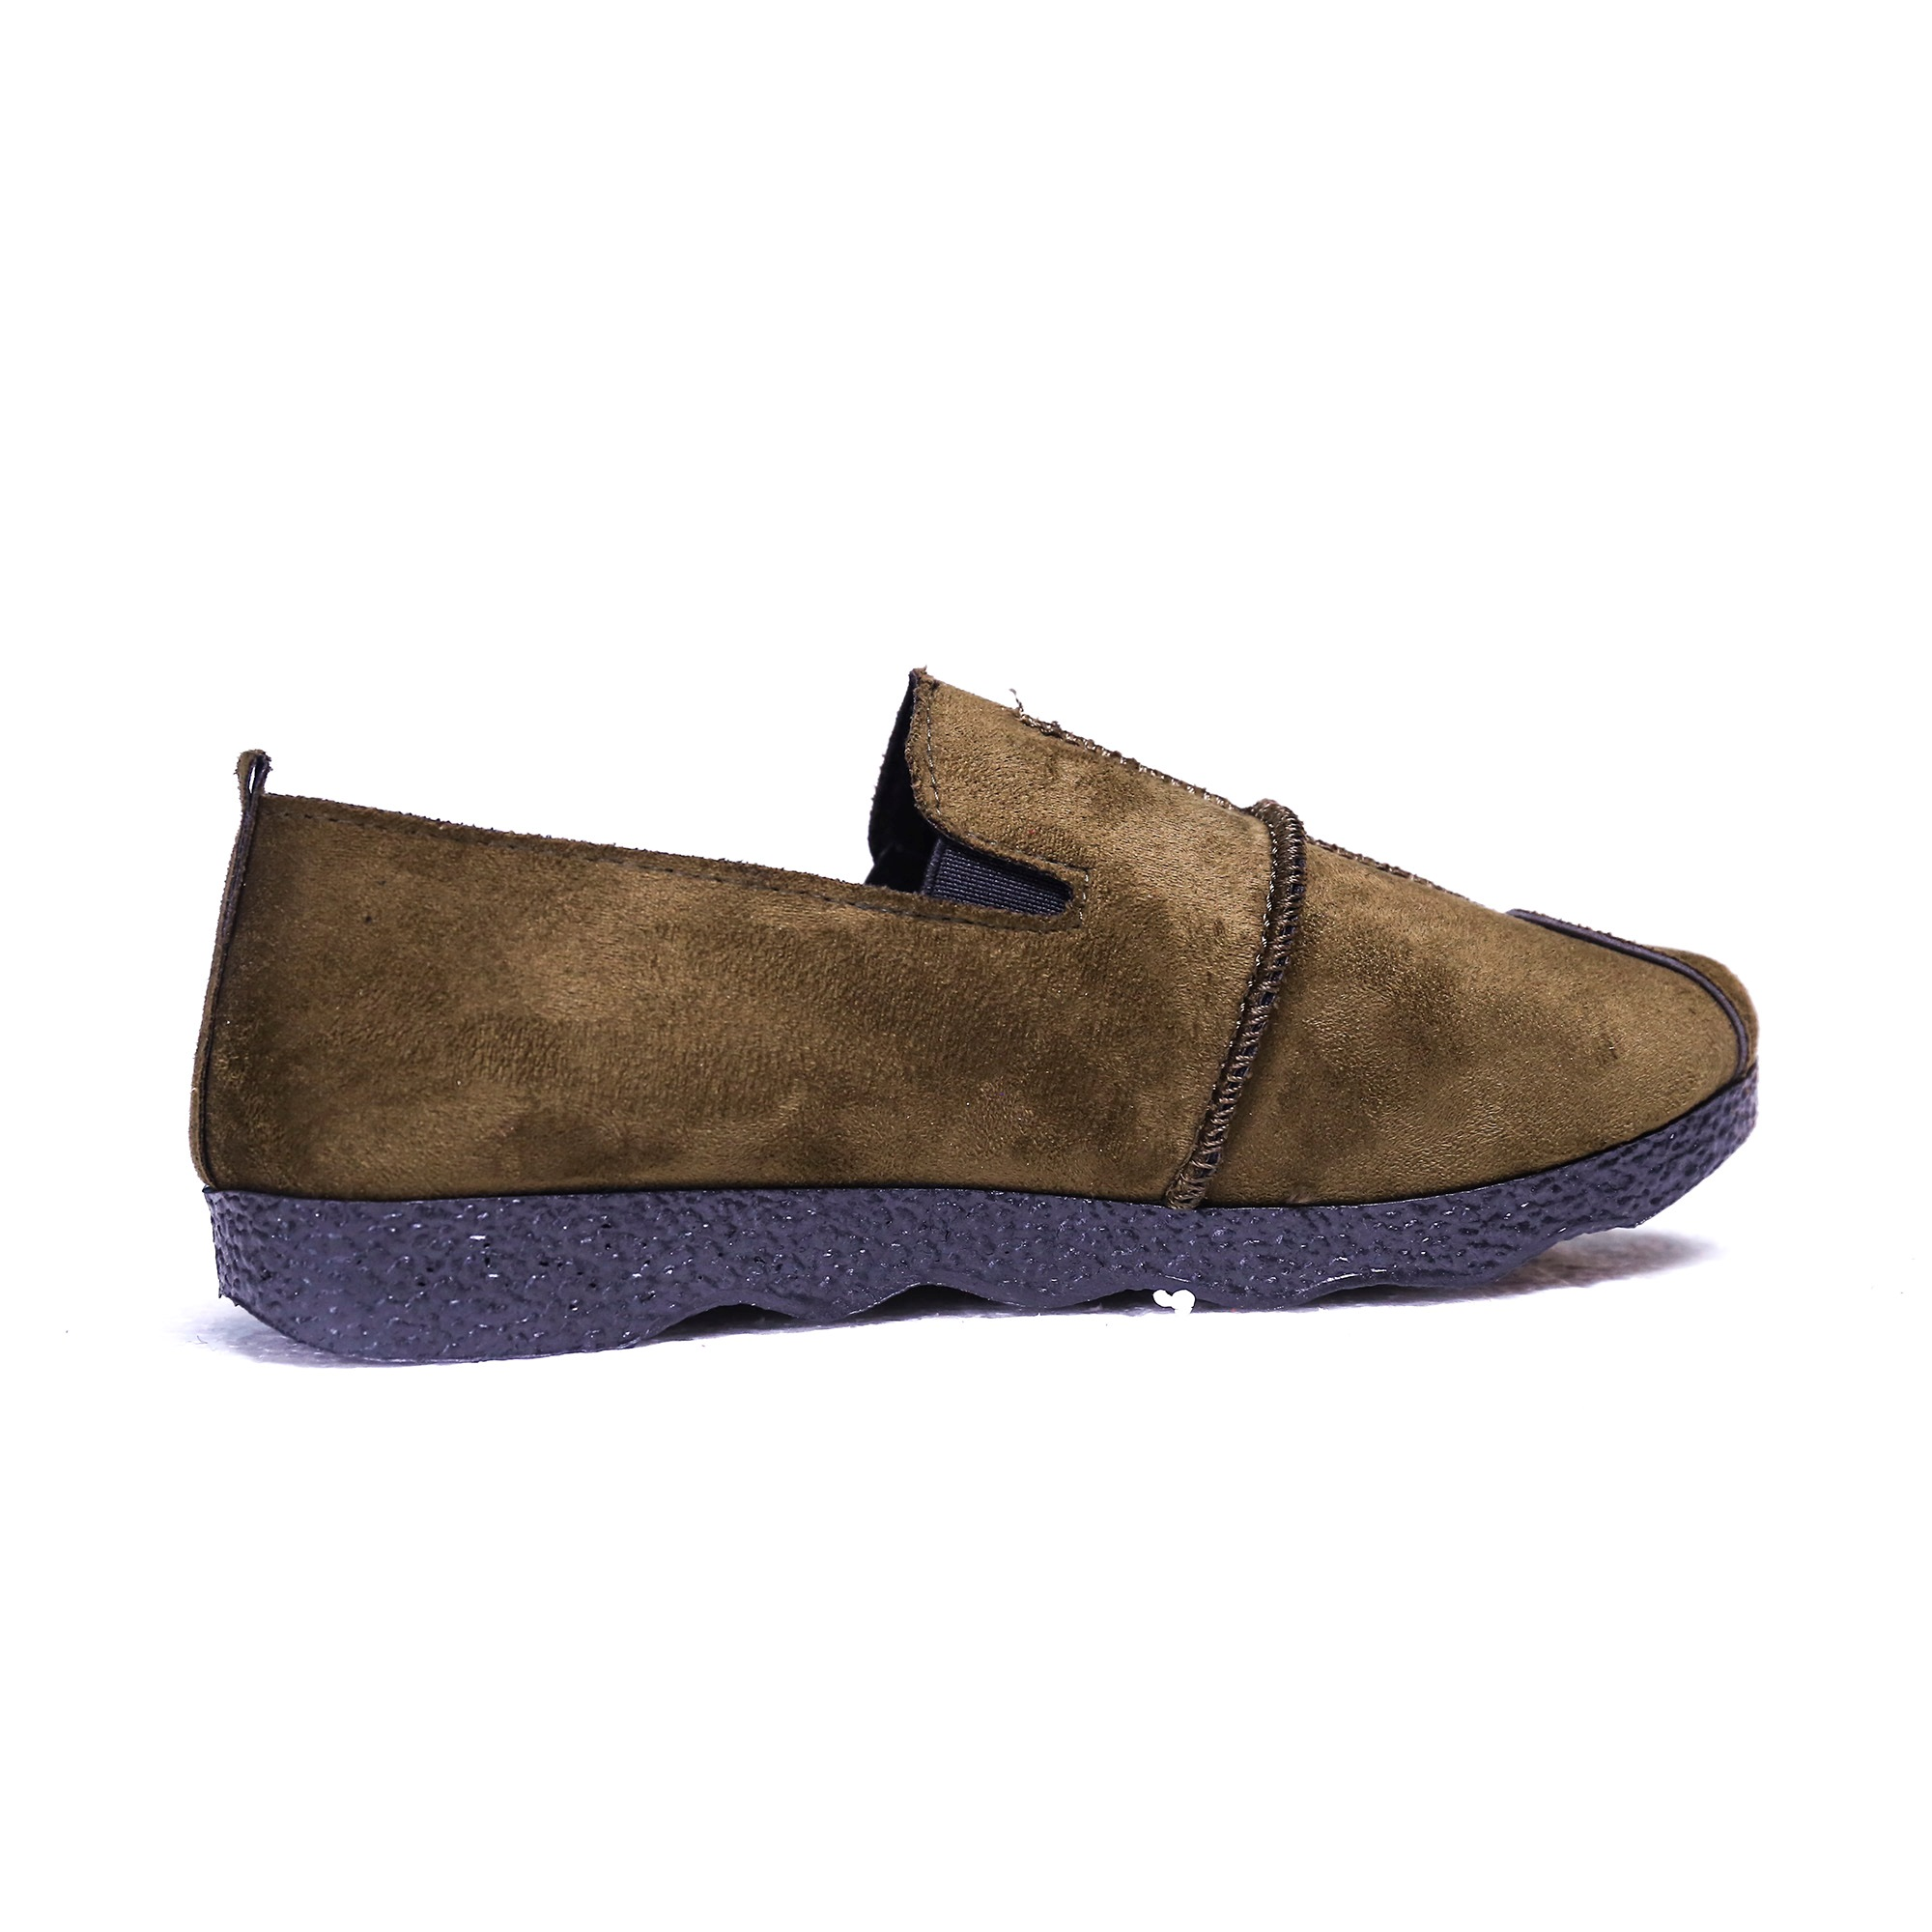 Suede Sewing Plain Flats Shoes for Women